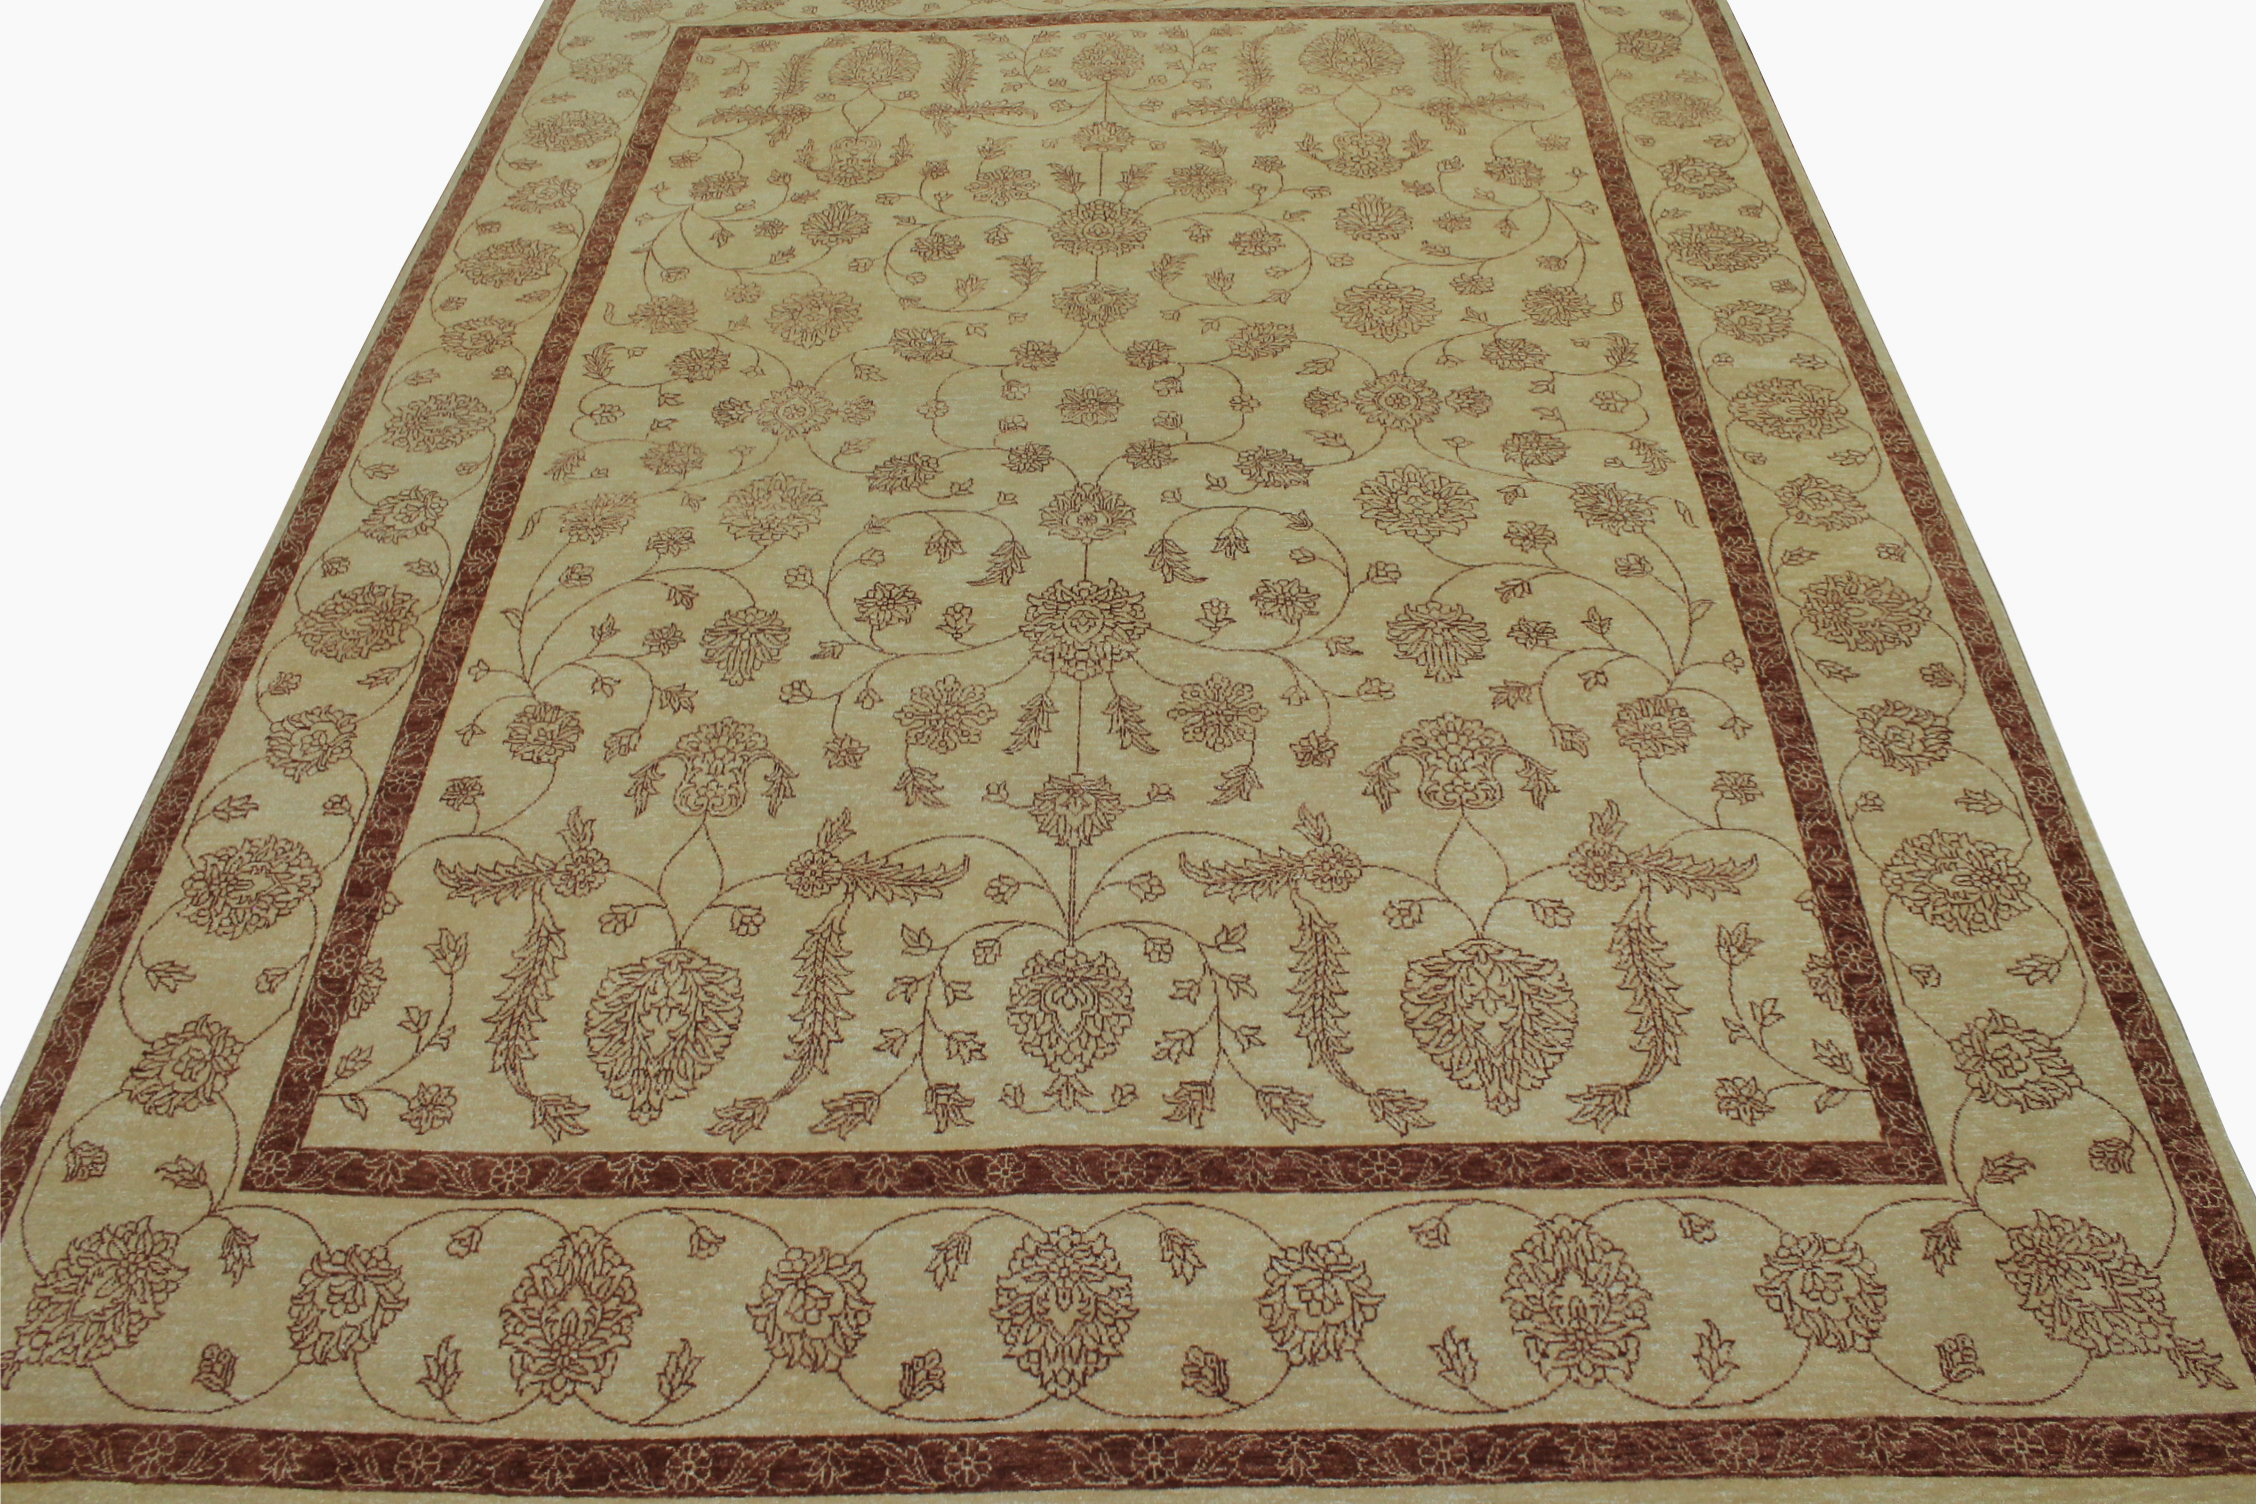 9x12 Contemporary Hand Knotted Wool Area Rug - MR9186